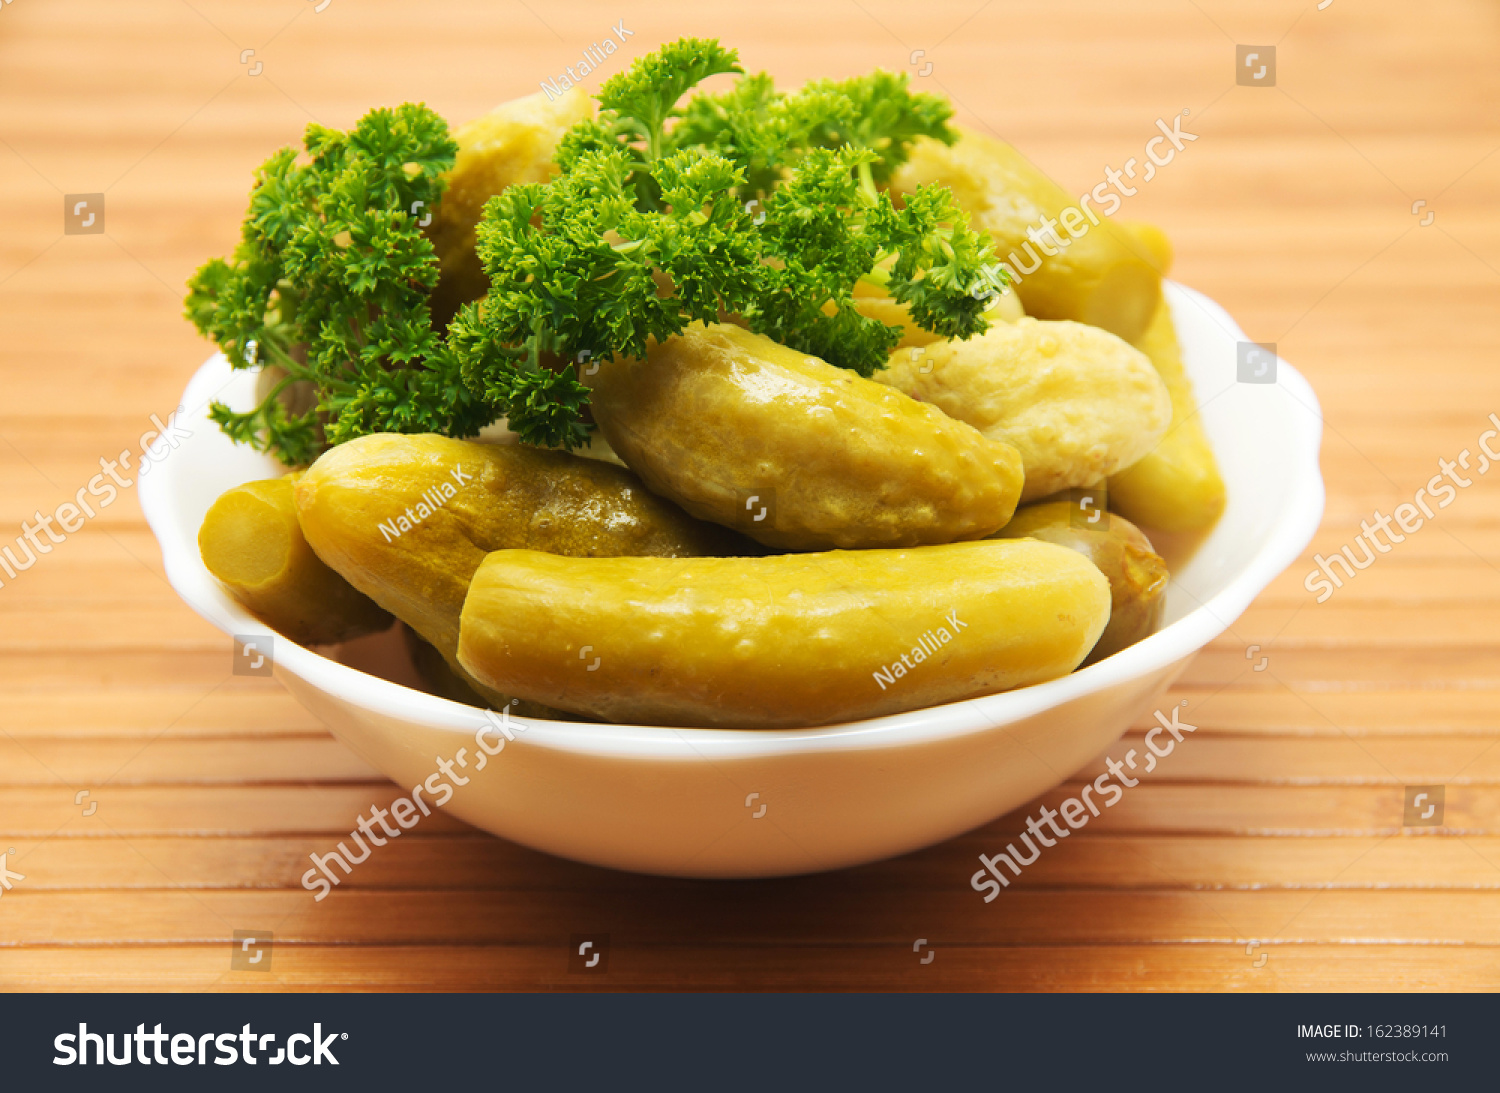 Plate with small canned gherkins on wooden background. #162389141